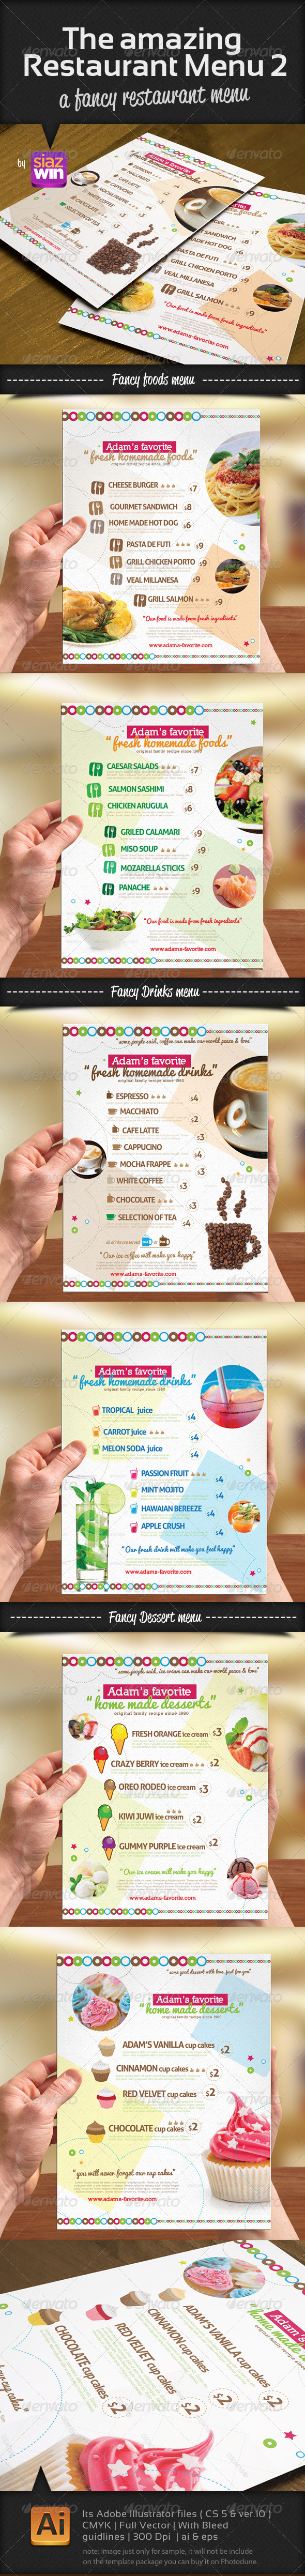 The Restaurant Menu 2 - Food Menus Print Templates